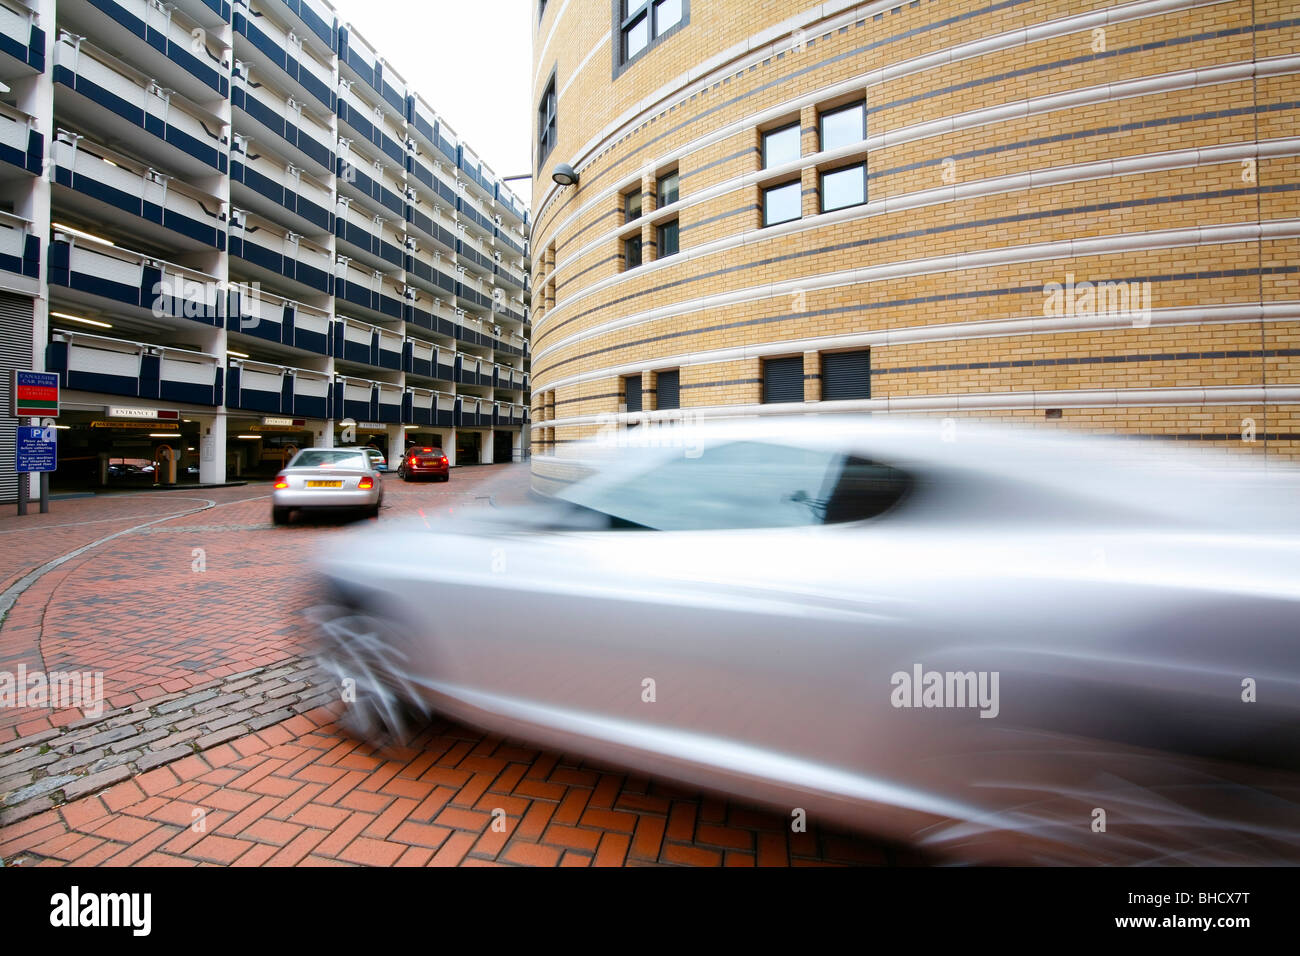 Cars in a queue waiting to park on the multi storey car park in Brindleyplace, Birmingham, West Midlands. - Stock Image